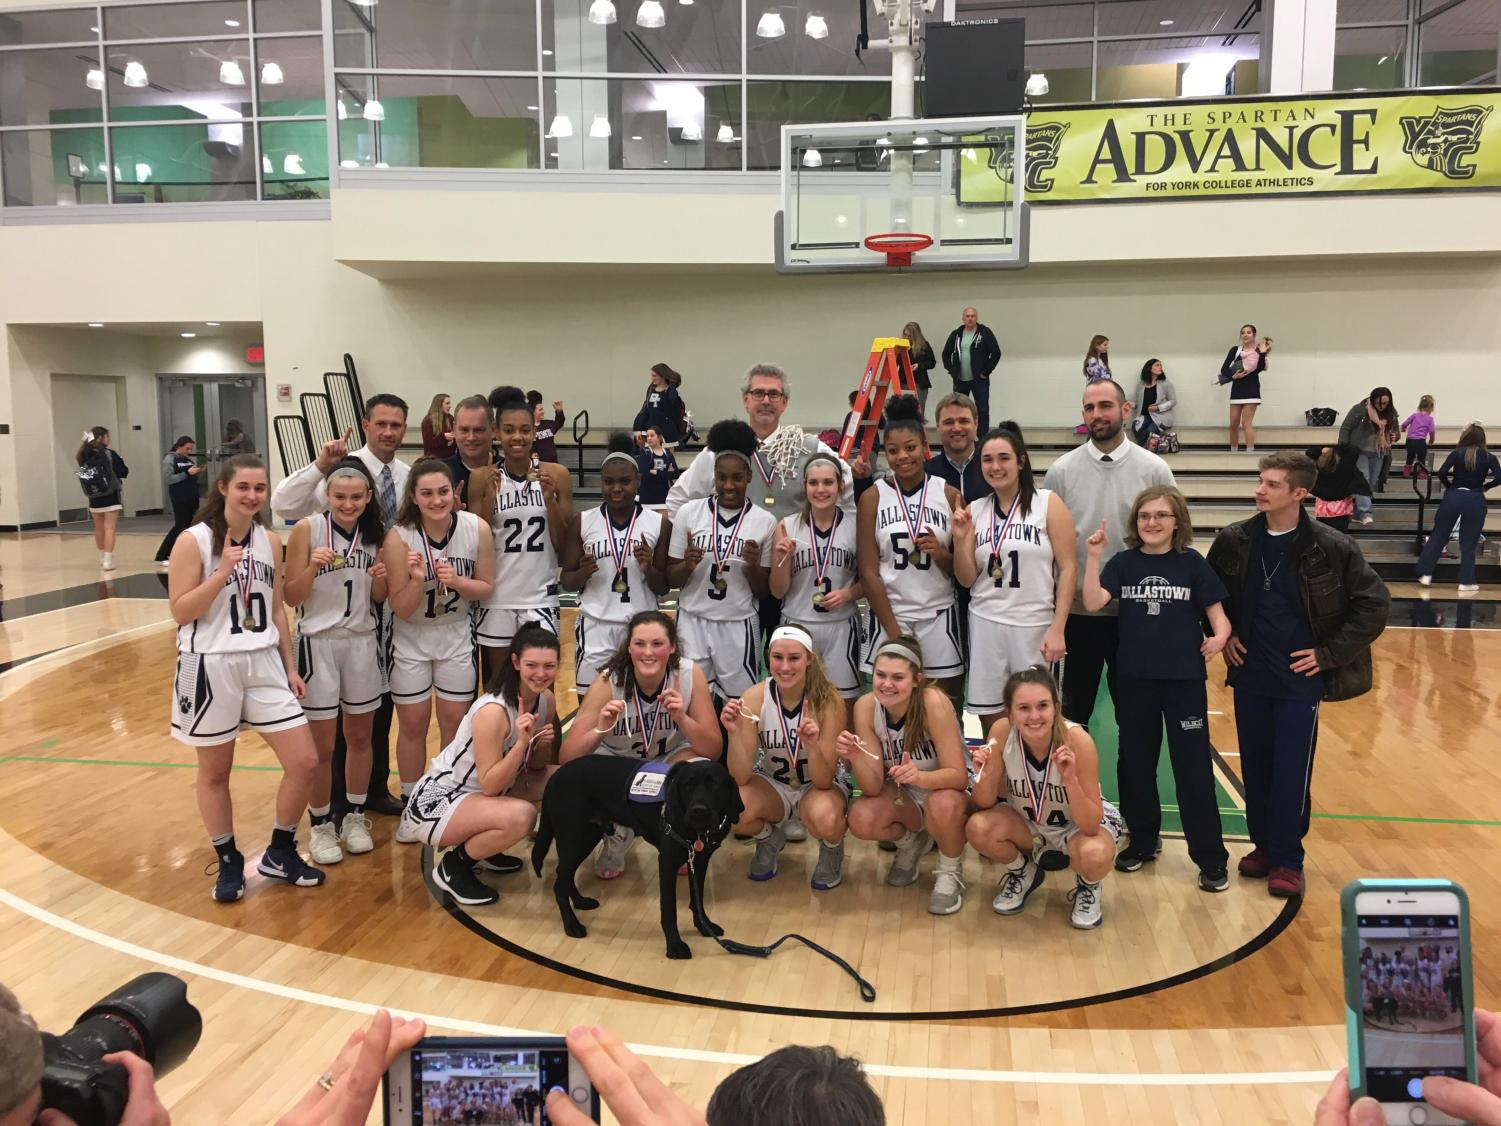 The Dallastown Girl's Basketball team beat Spring Grove in the county championship on February 24, 2019 at York College.